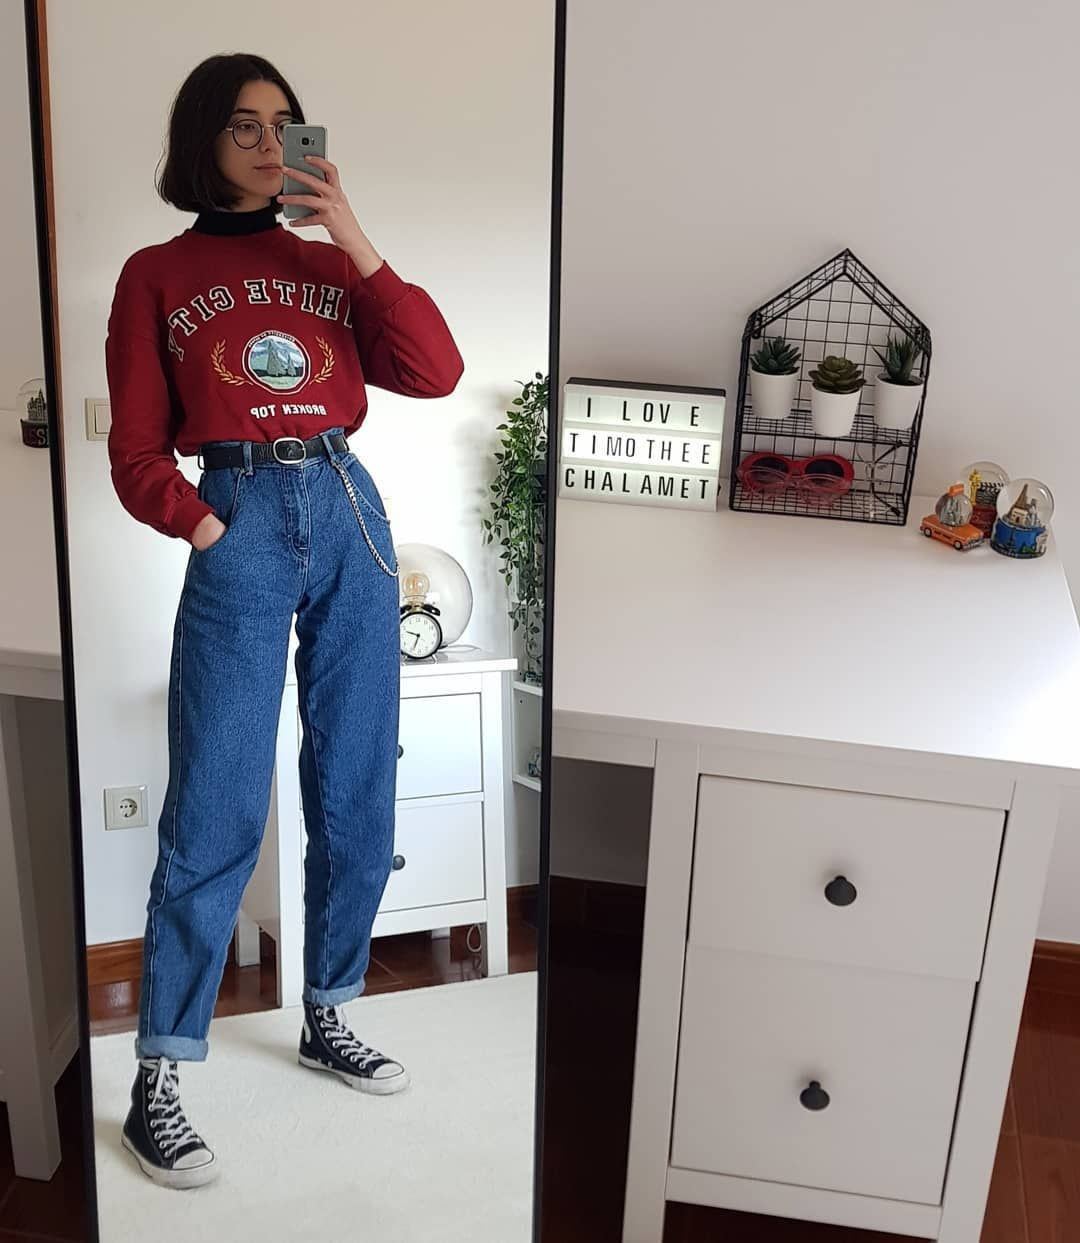 Aesthetic Grunge Vintage On Instagram Do You Prefer 1 Or 2 It S Me R A F A E L A Aest Retro Outfits Clothes Fashion Inspo Outfits